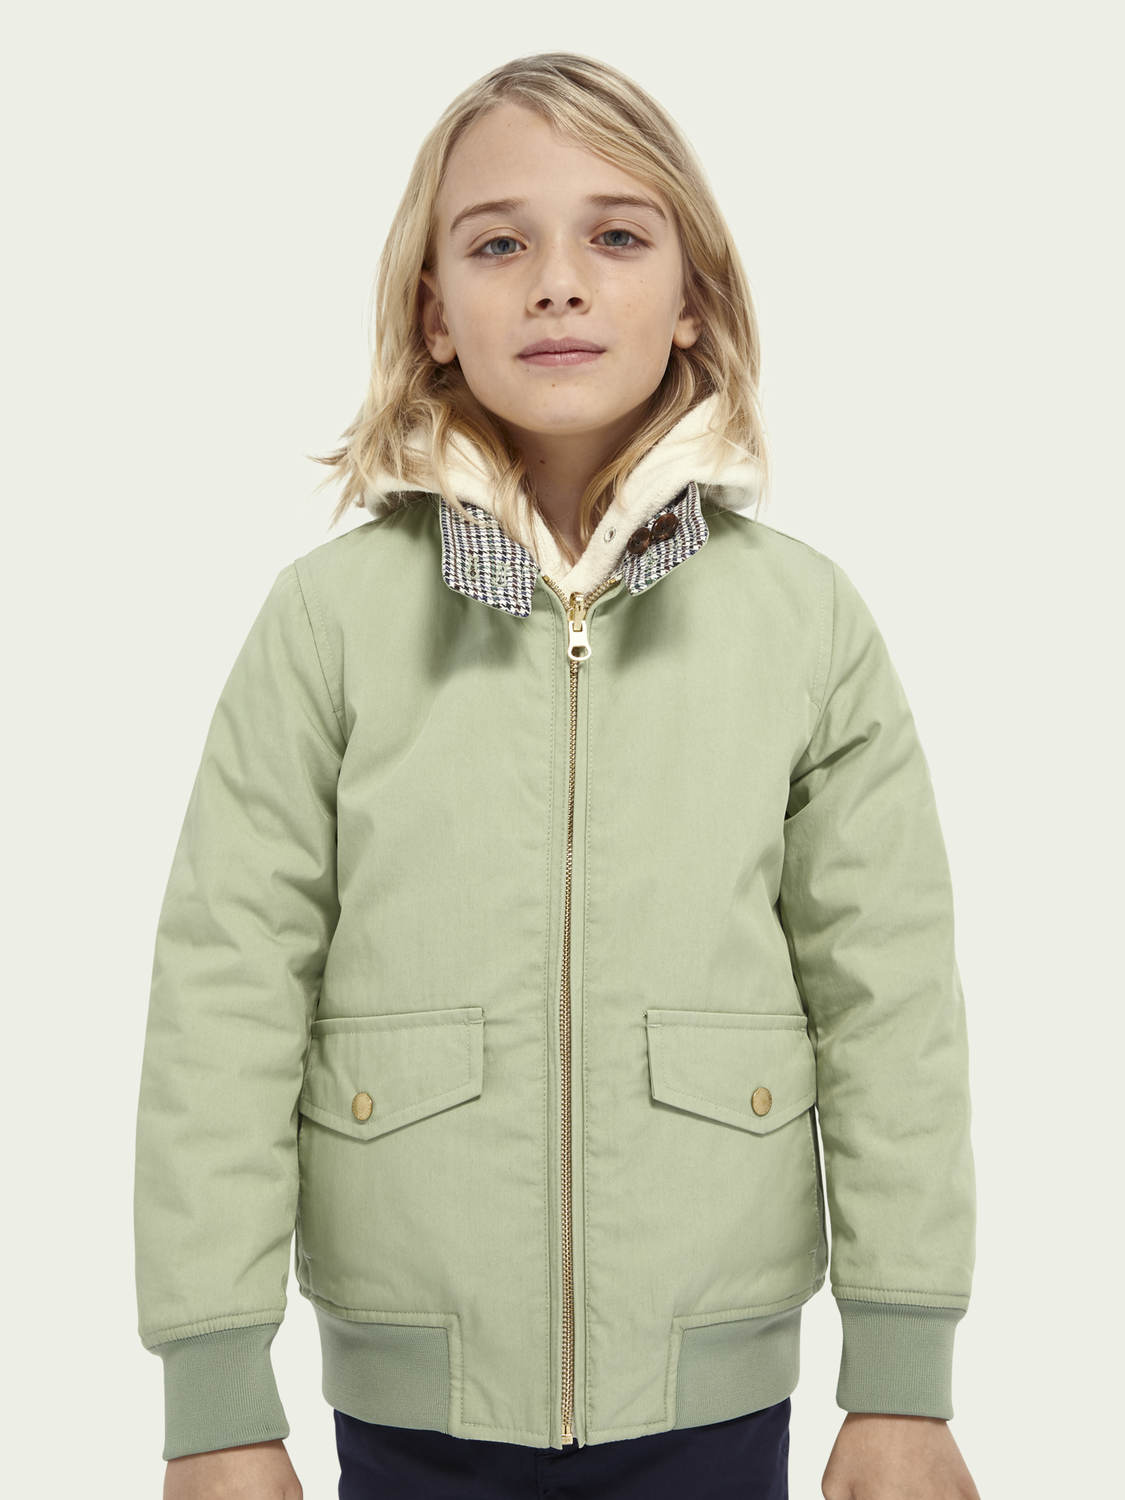 Kids Reversible Harrington jacket